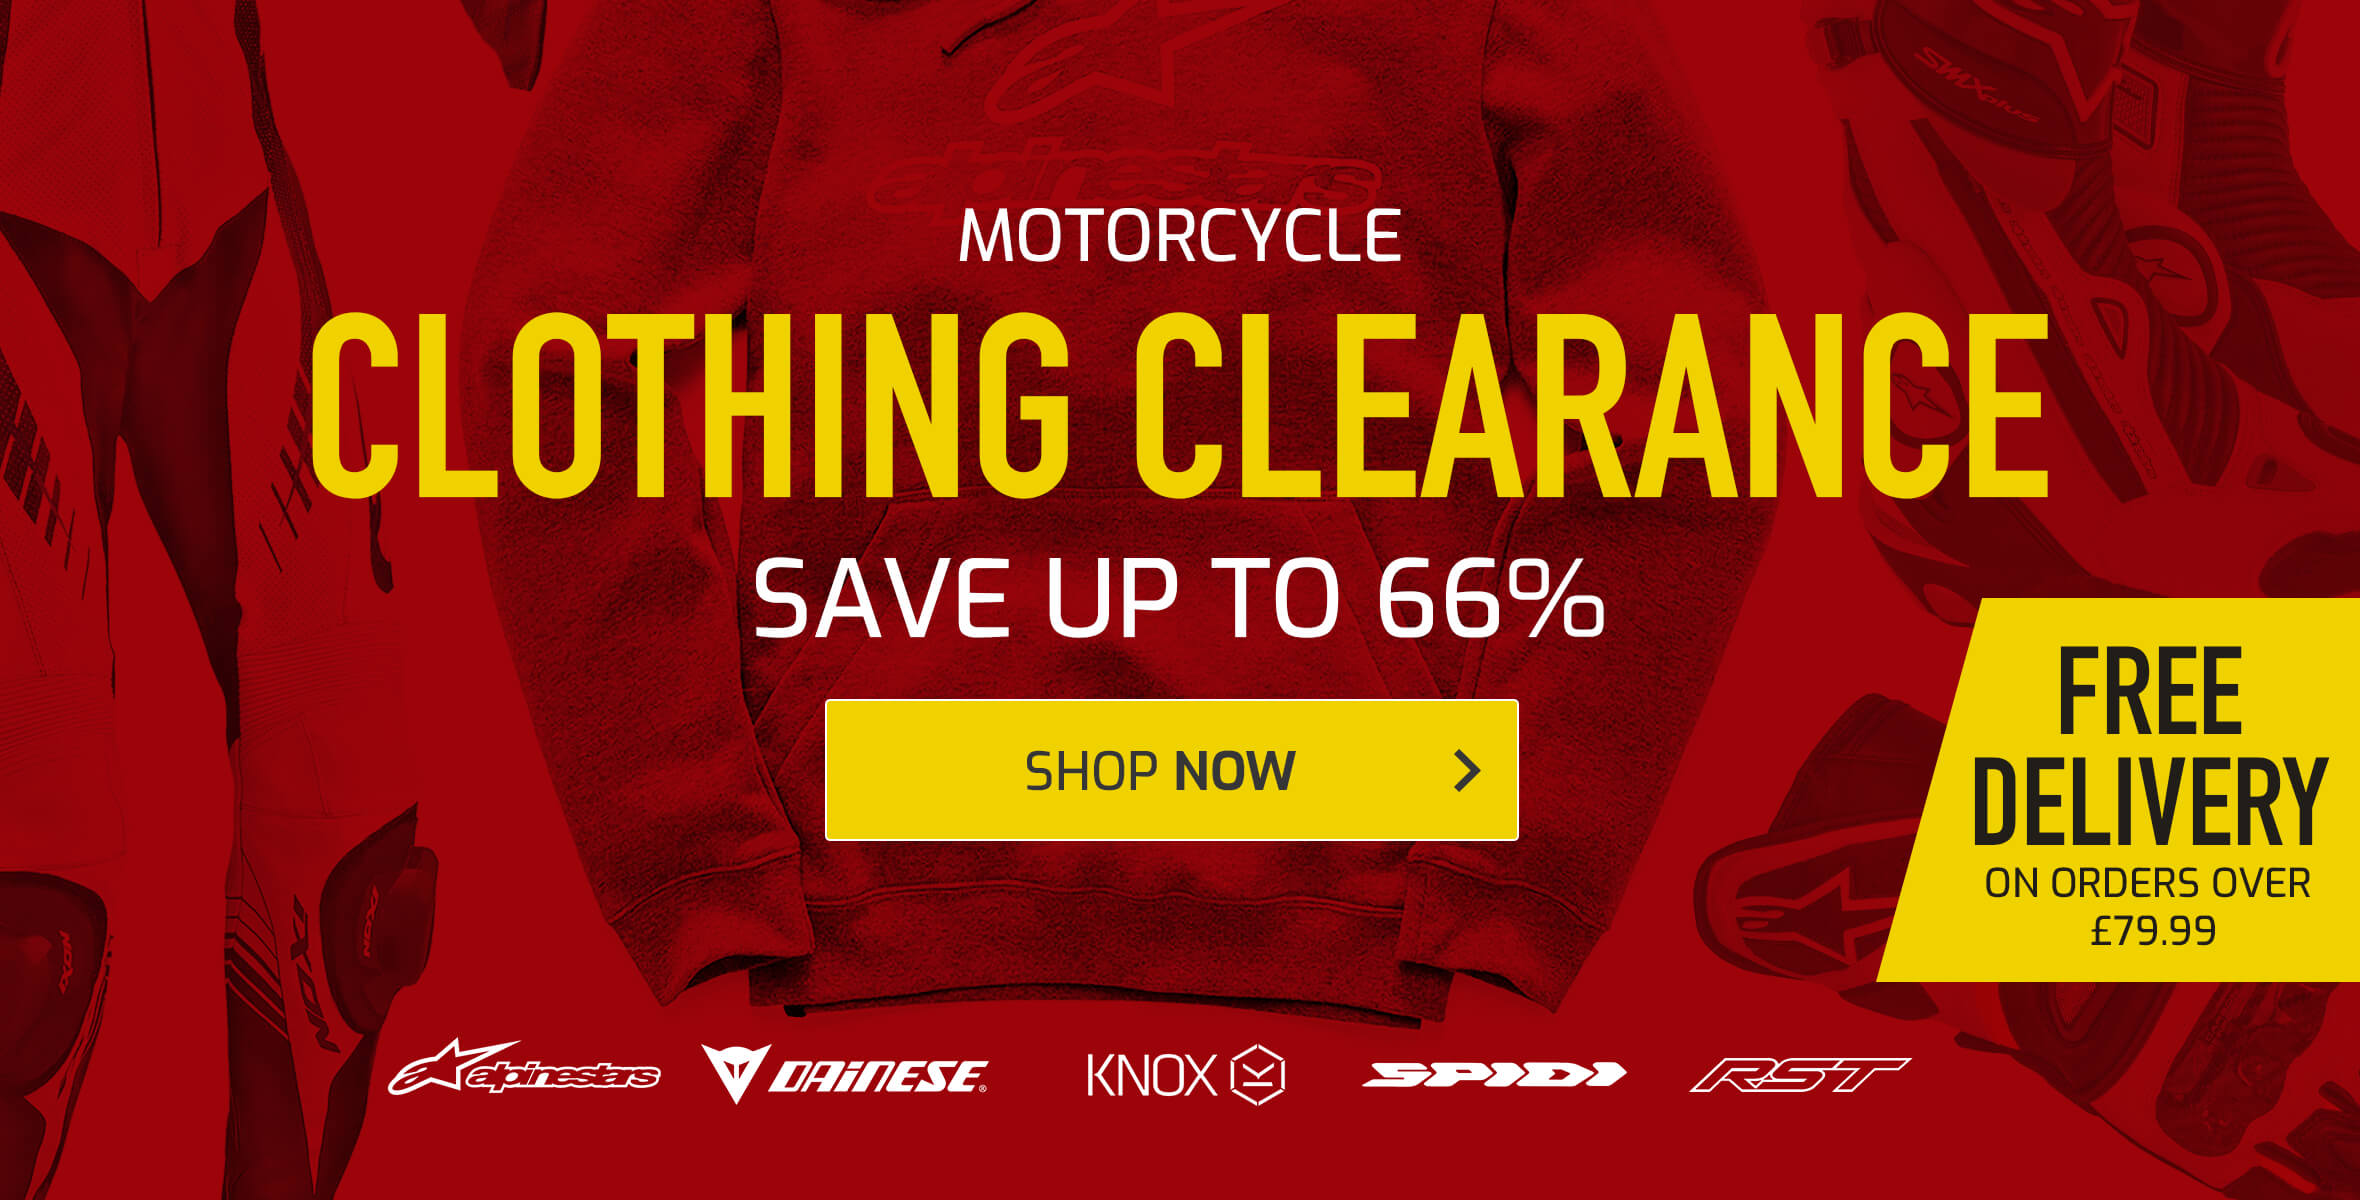 Motorcycle Clothing Clearance